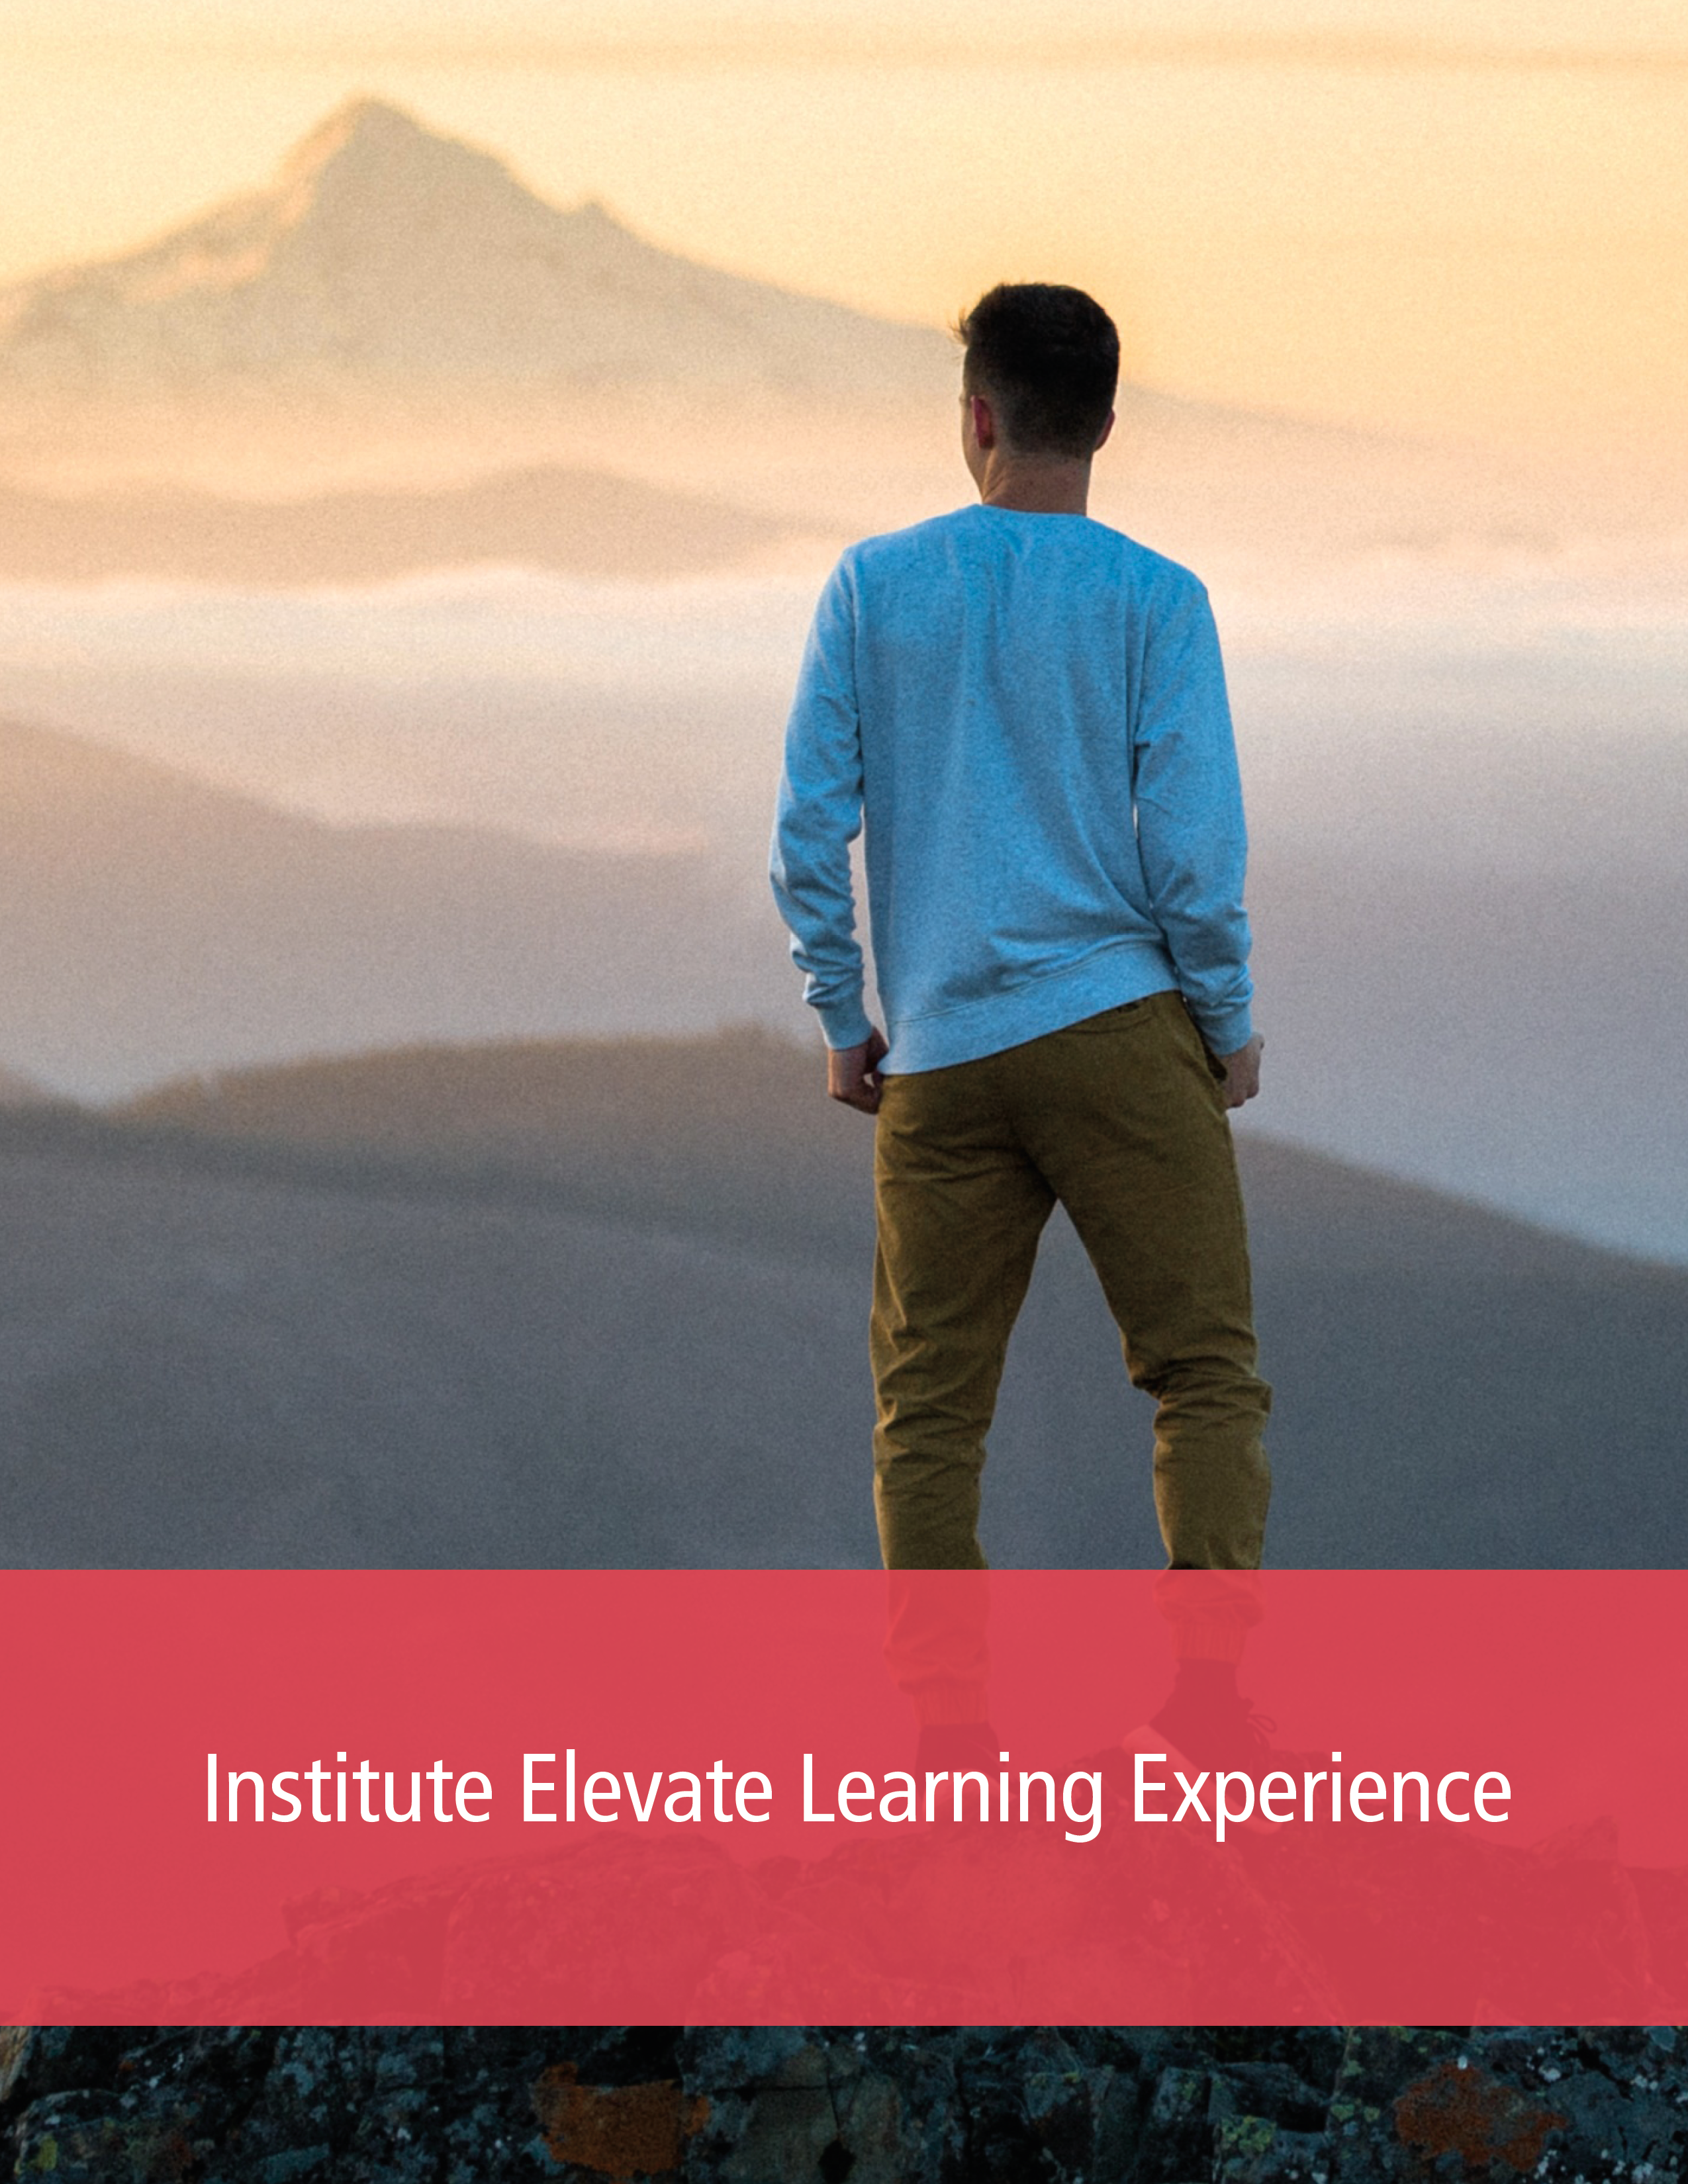 Institute Elevate Learning Experience